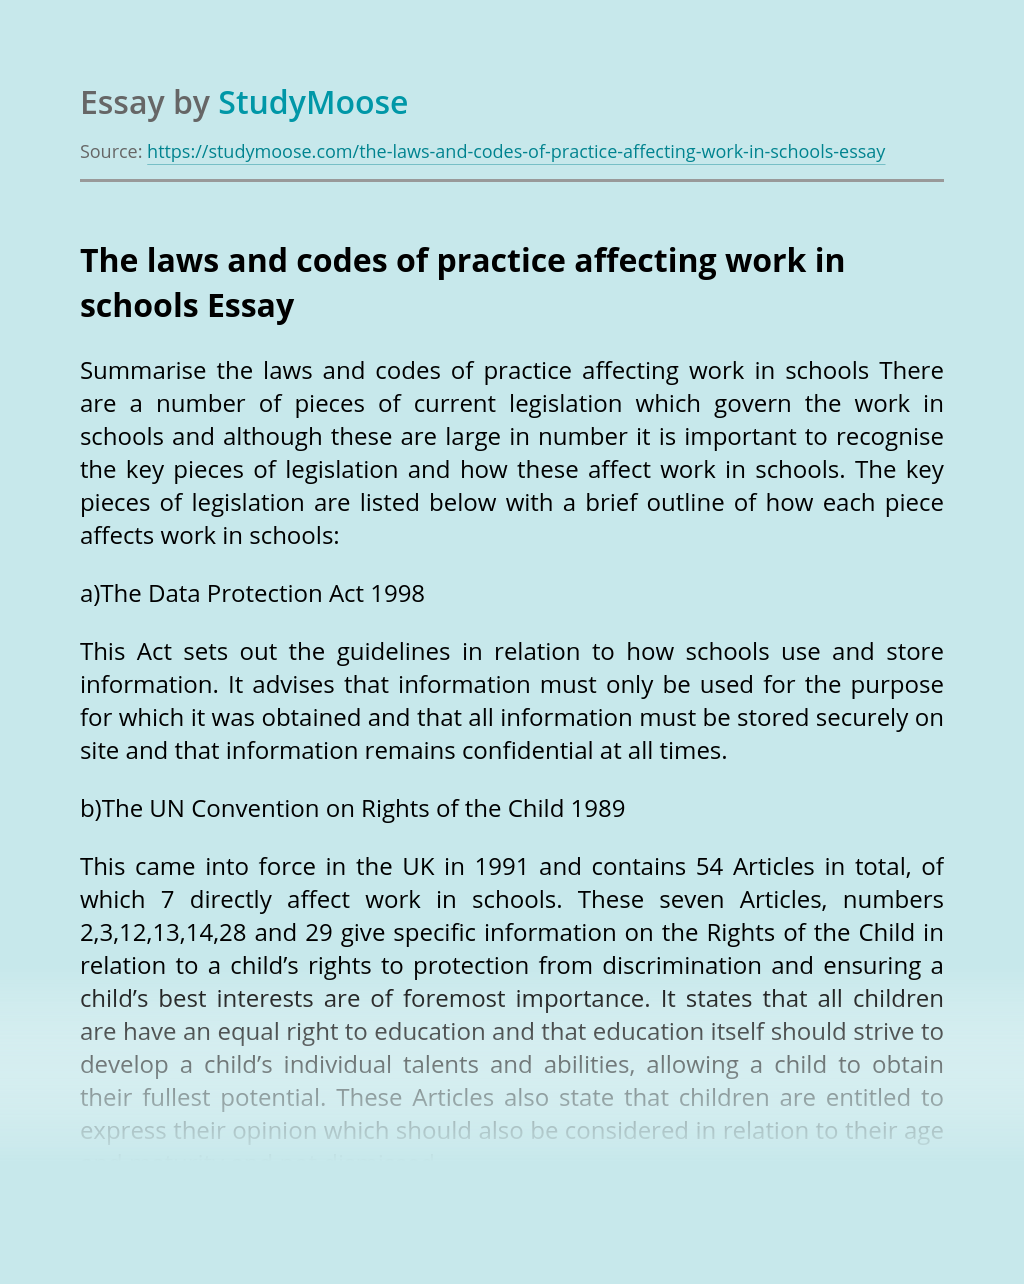 The laws and codes of practice affecting work in schools